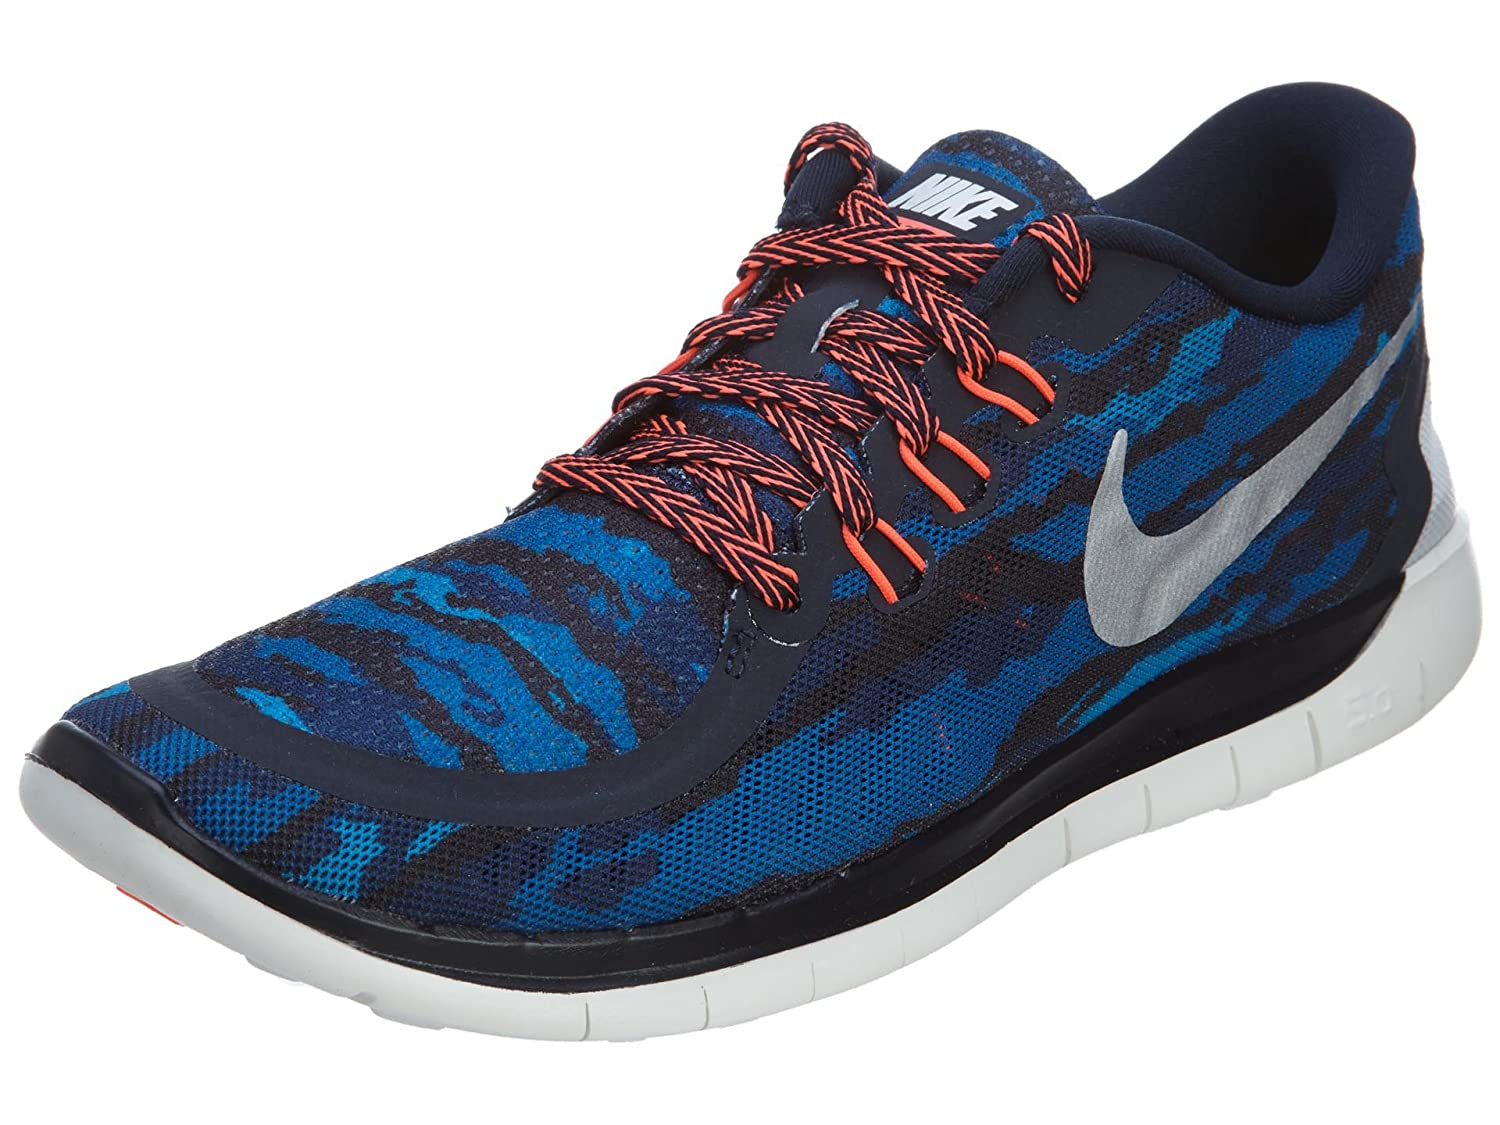 Details about Junior NIKE FREE 5.0 PRINT Running Shoes Trainers Size 3.5 Youth 749681 400